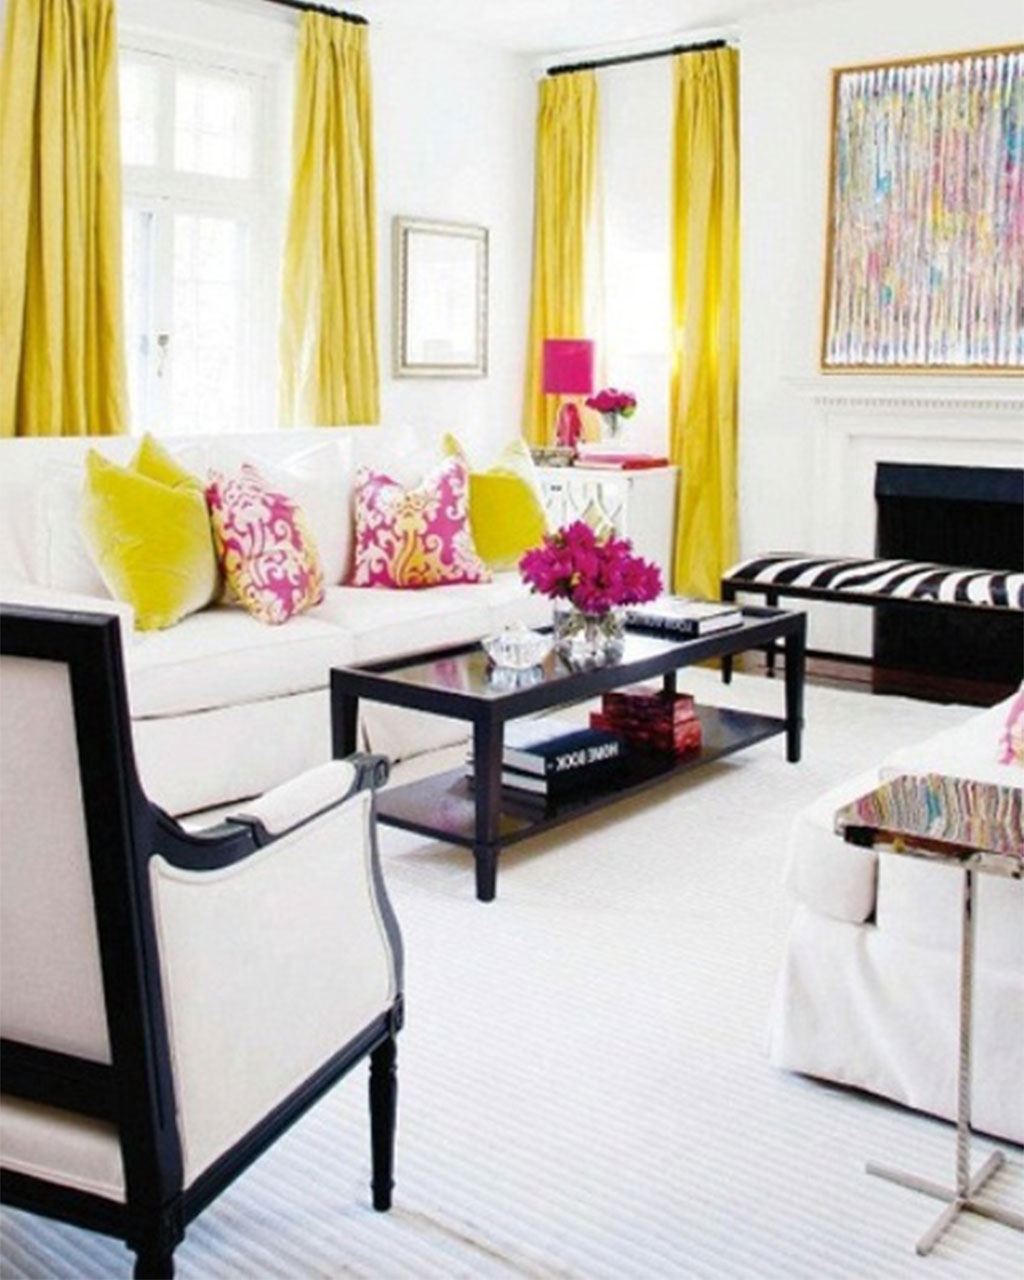 Spring Design Ideas: 36 Living Room Decorating Ideas That Smells Like Spring